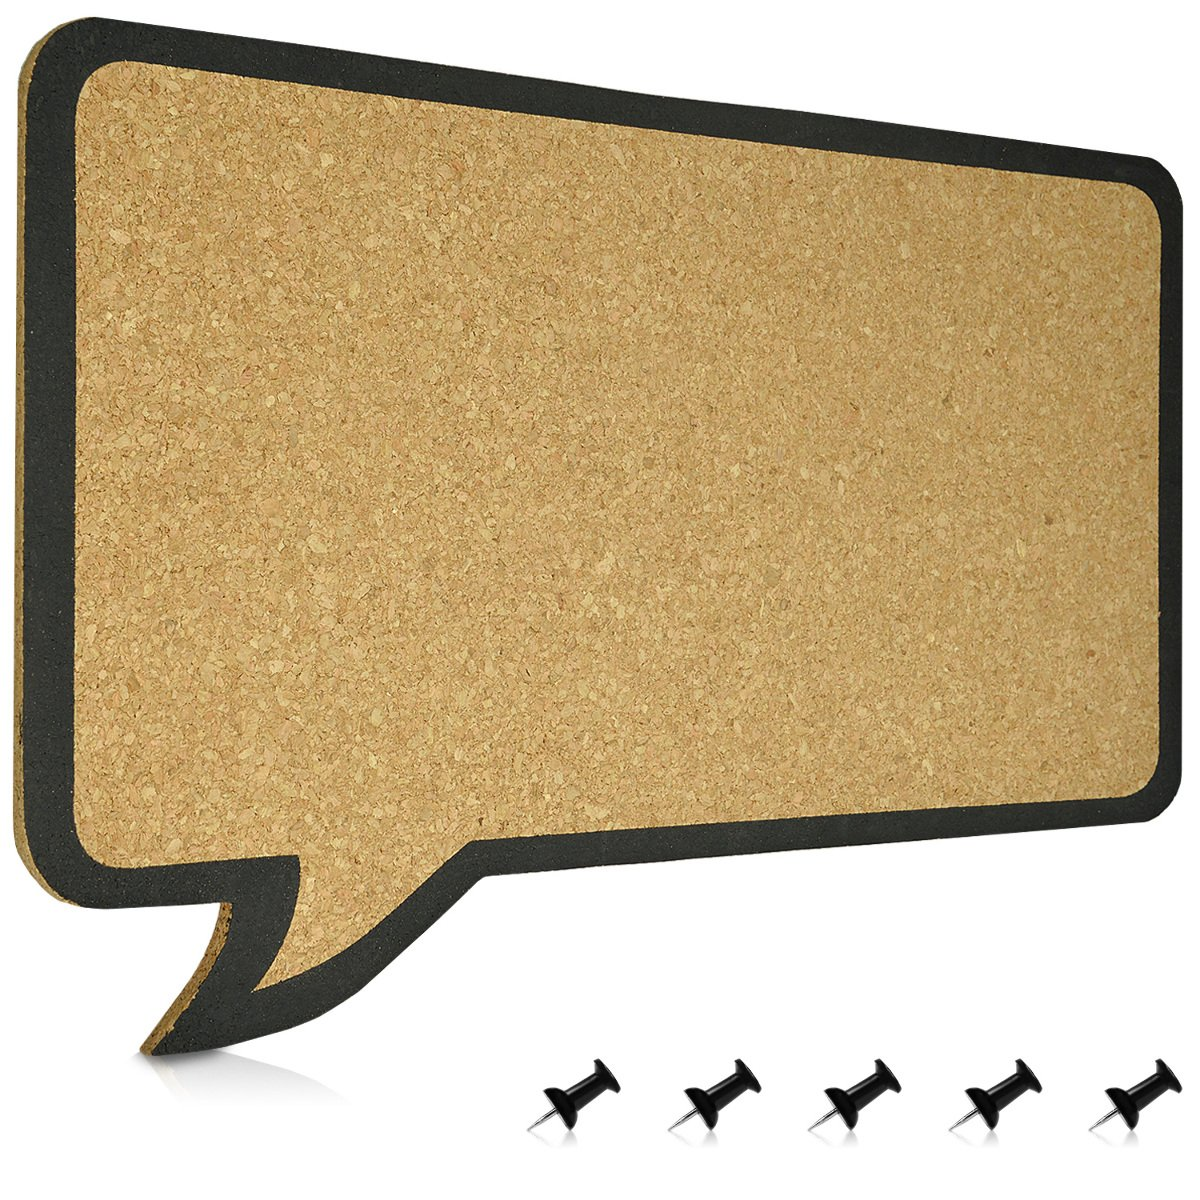 Navaris Cork Bulletin Board - 25 x 30 cm Push Pin Memo Corkboard in Owl Shape and Design with Push Pins for Kitchen, Classroom, Home Office, Bedroom KW-Commerce 45373.01_m001253